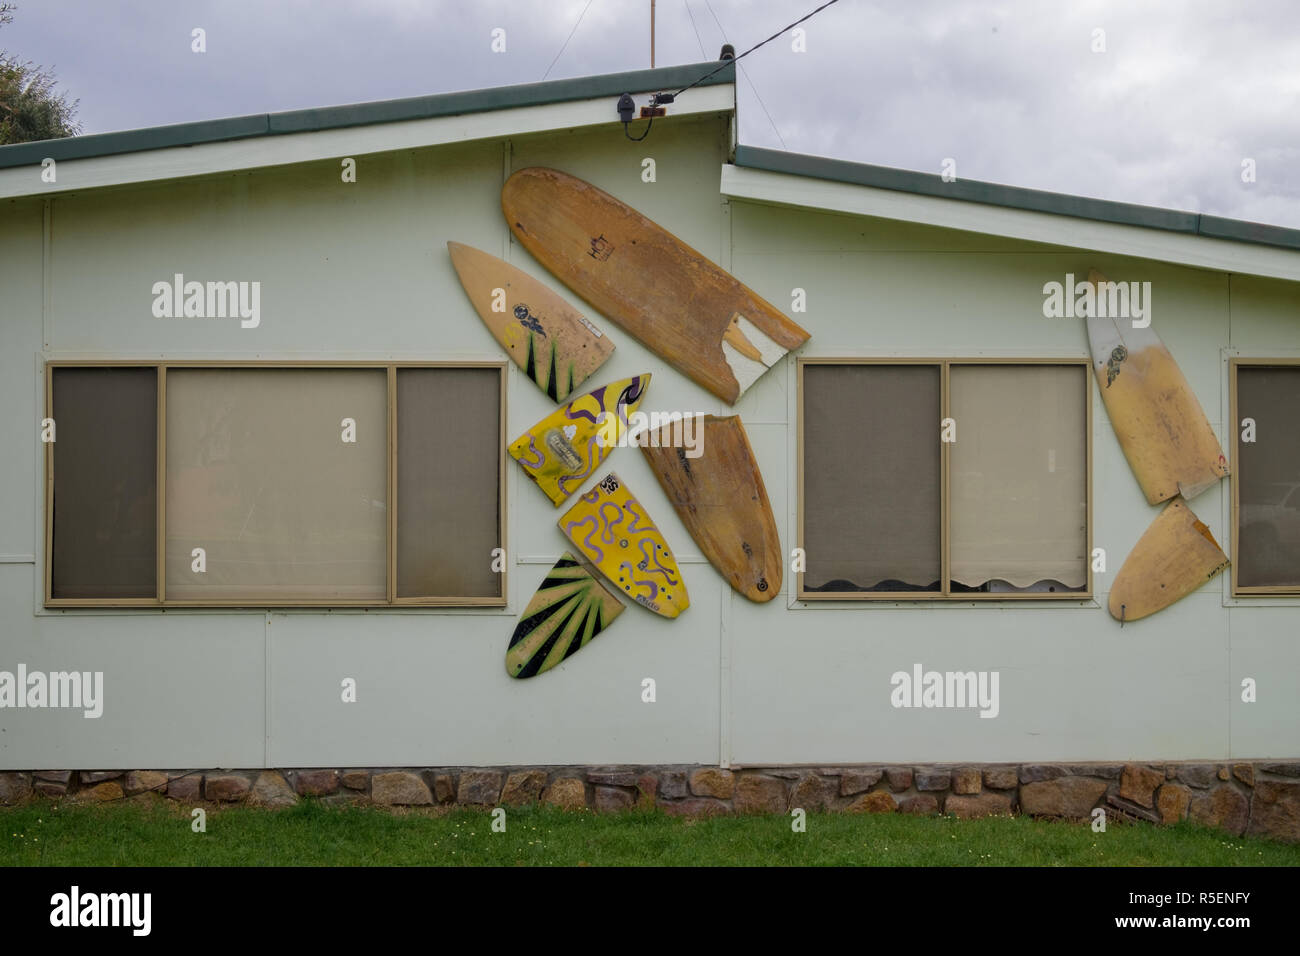 A Creative Way To Re Use Old Broken Surfboards On A House In